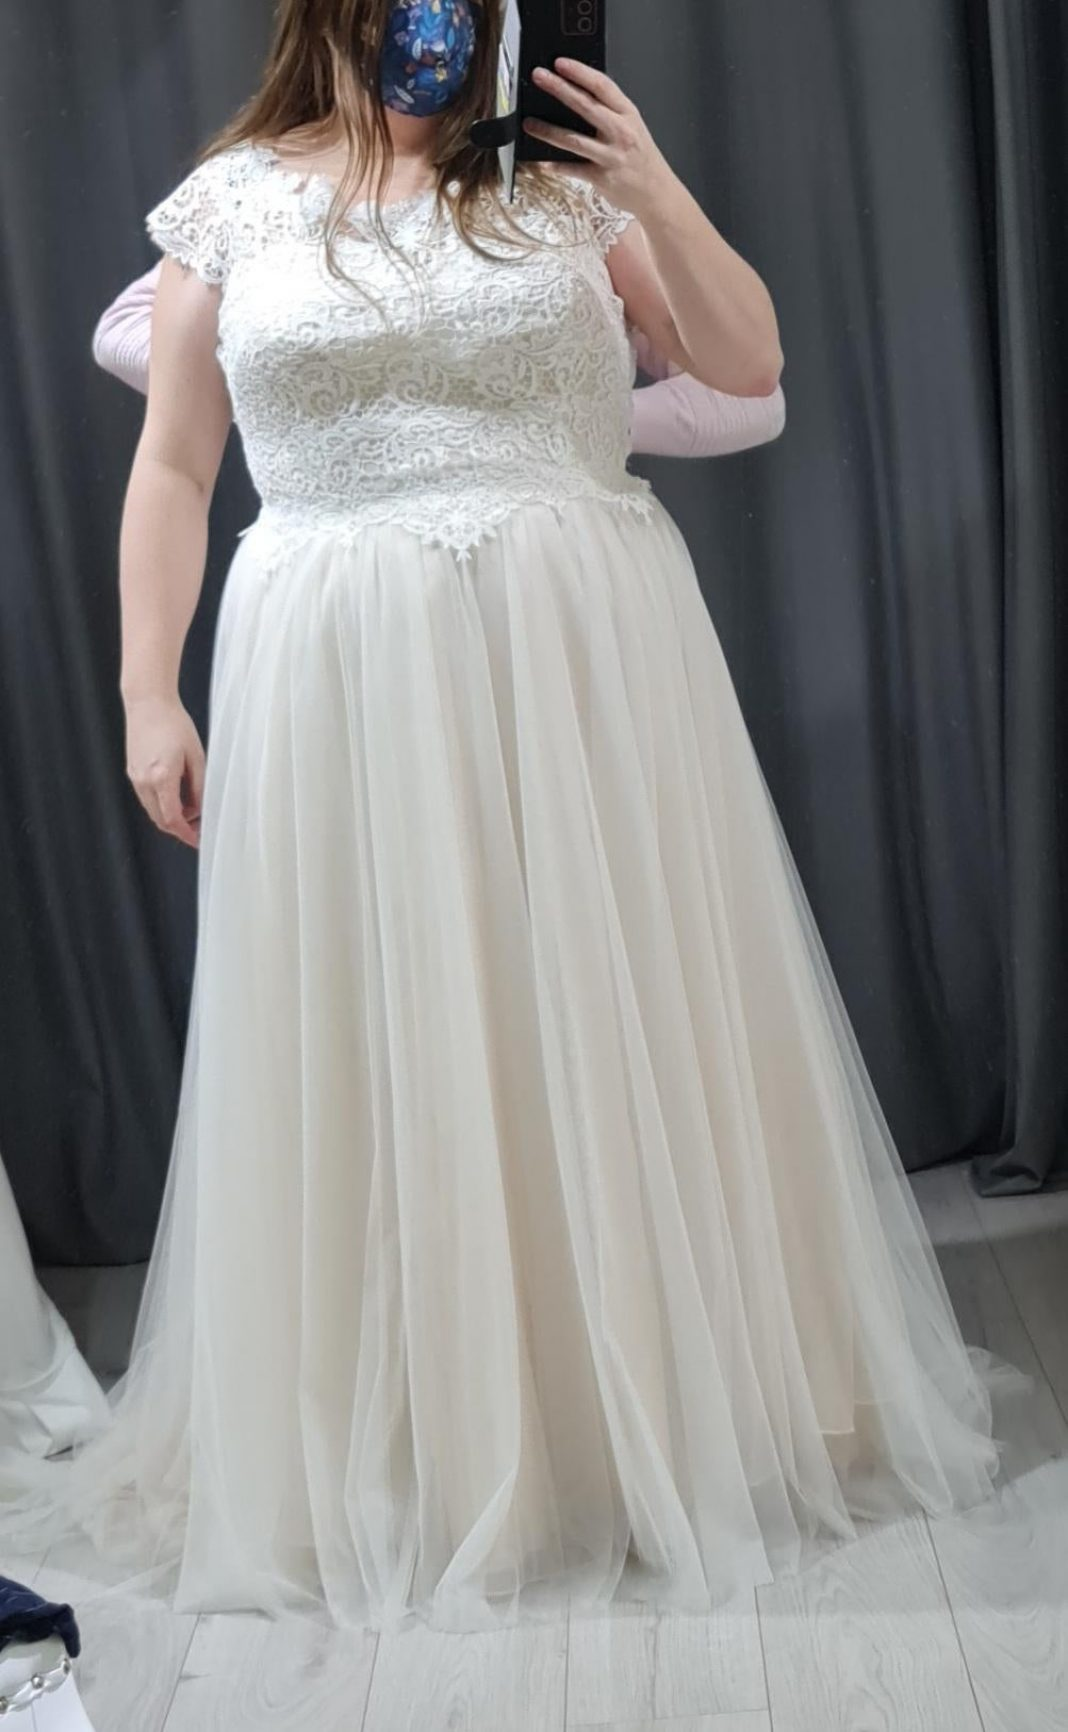 Cancelled wedding in 2020, decided last week to go ahead and get married in July this year. Found this dress and fell in love, can't wait to see it fitted properly. Dying to show the husband to be, so i'll just show it off here instead.